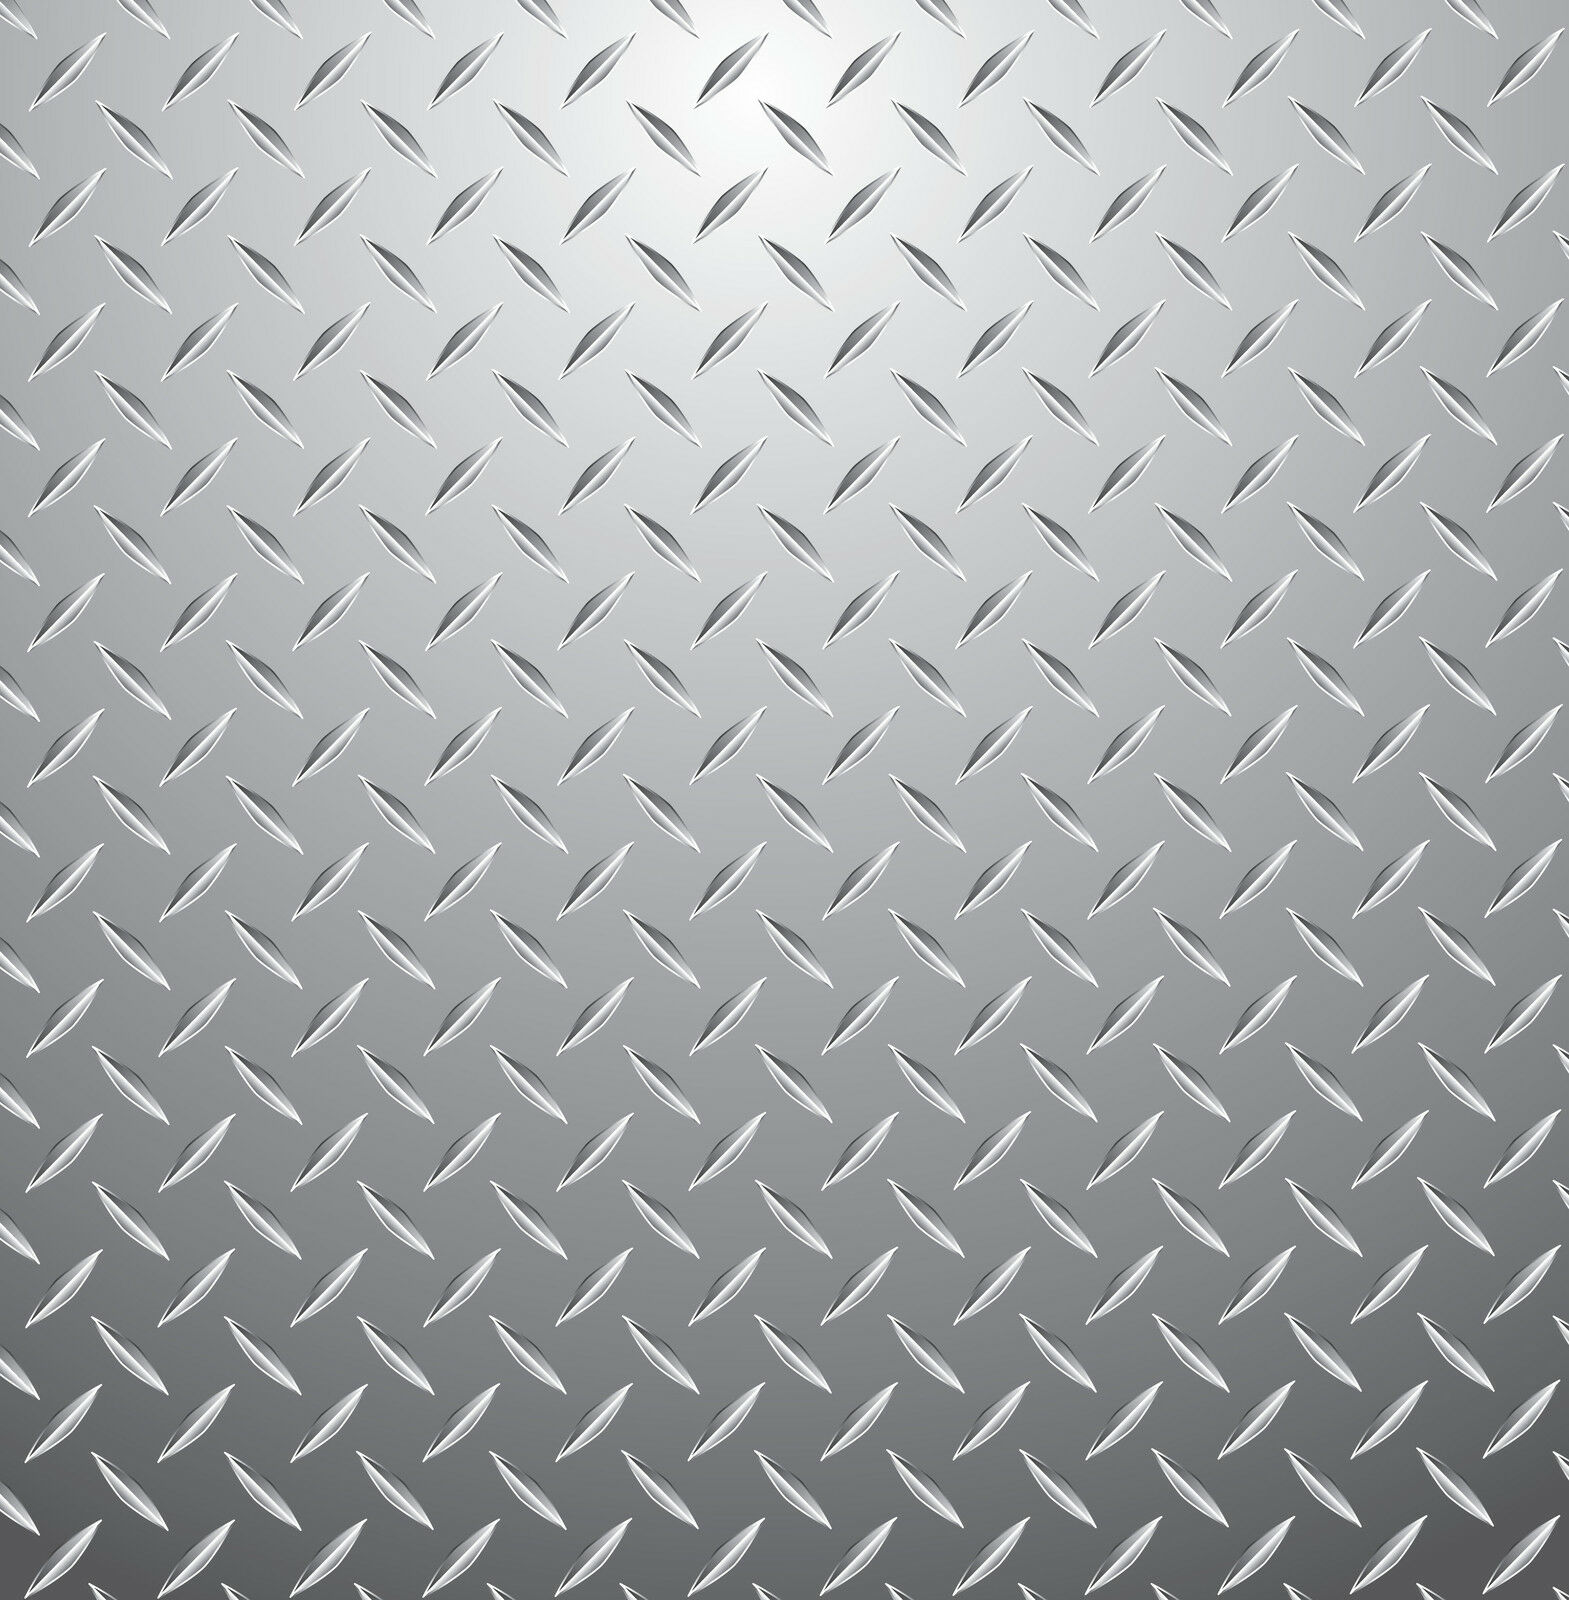 Checker Plate Silver Metallic Steel Criss Cross Childrens